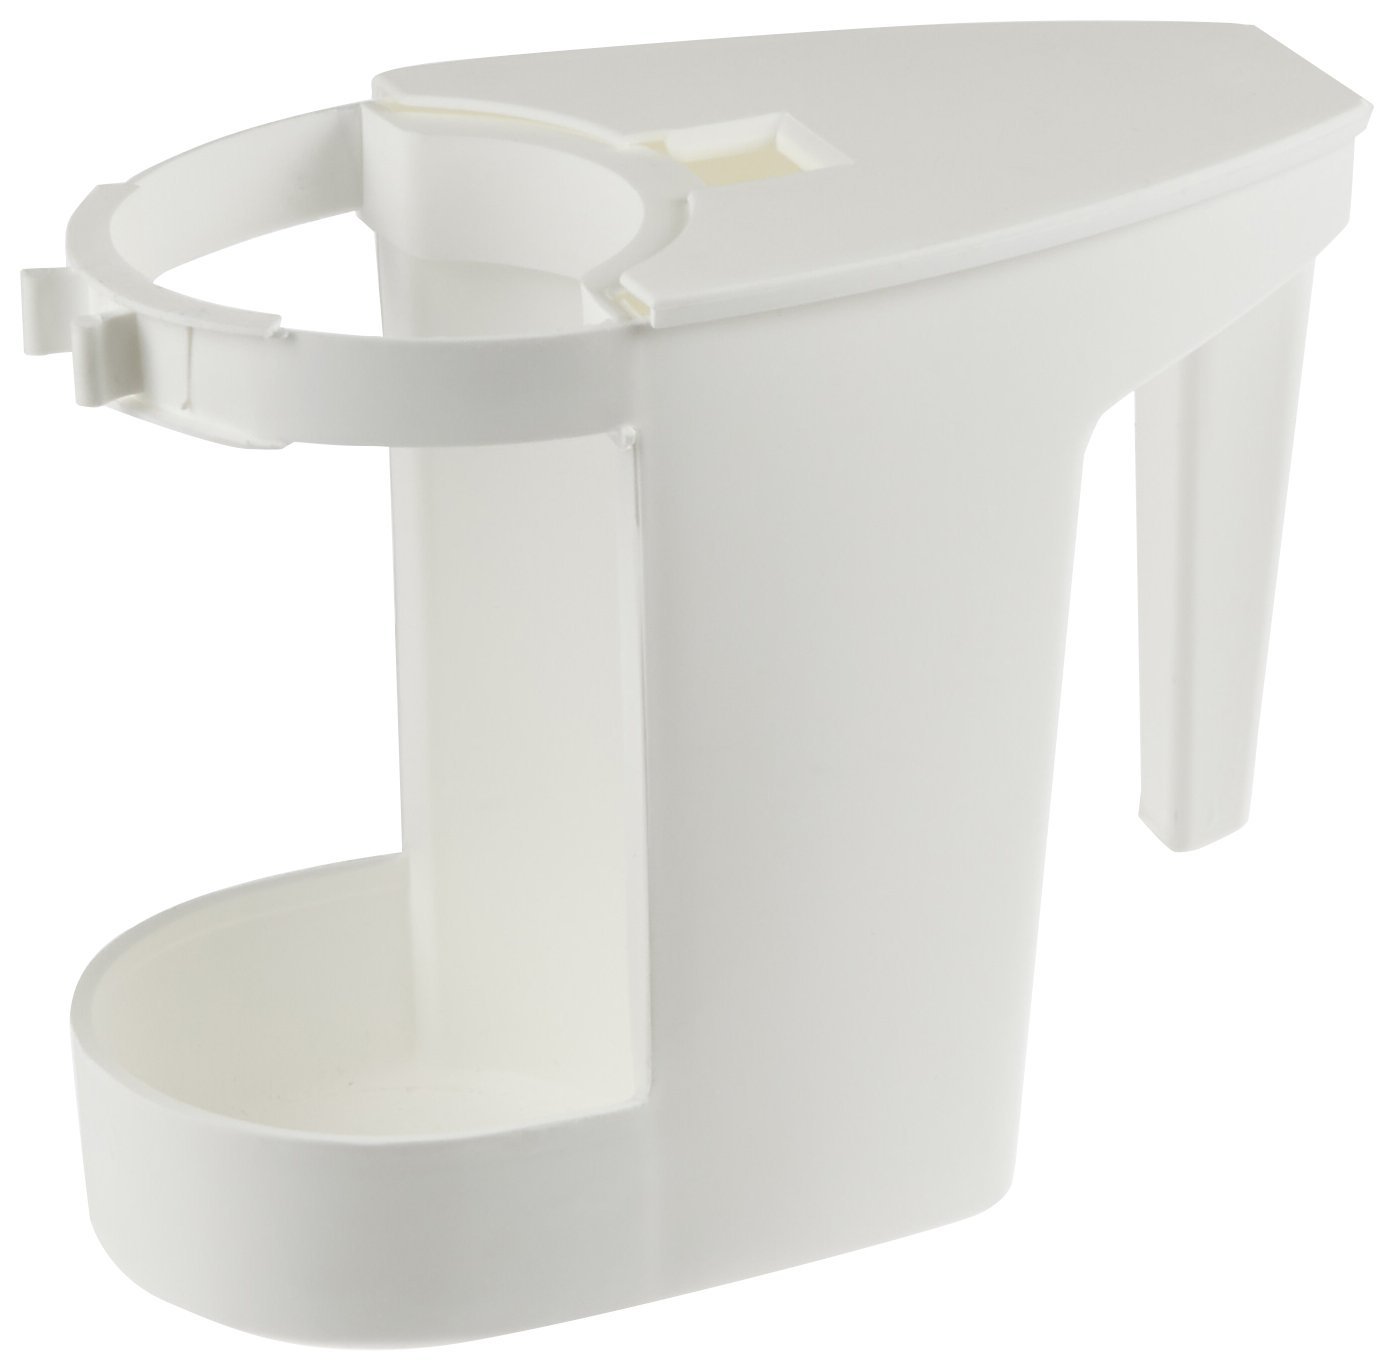 Impact 100 Super Toilet Bowl Caddy, 8'' Length x 4'' Width x 6'' Height, White (Case of 12) by Impact Products (Image #1)